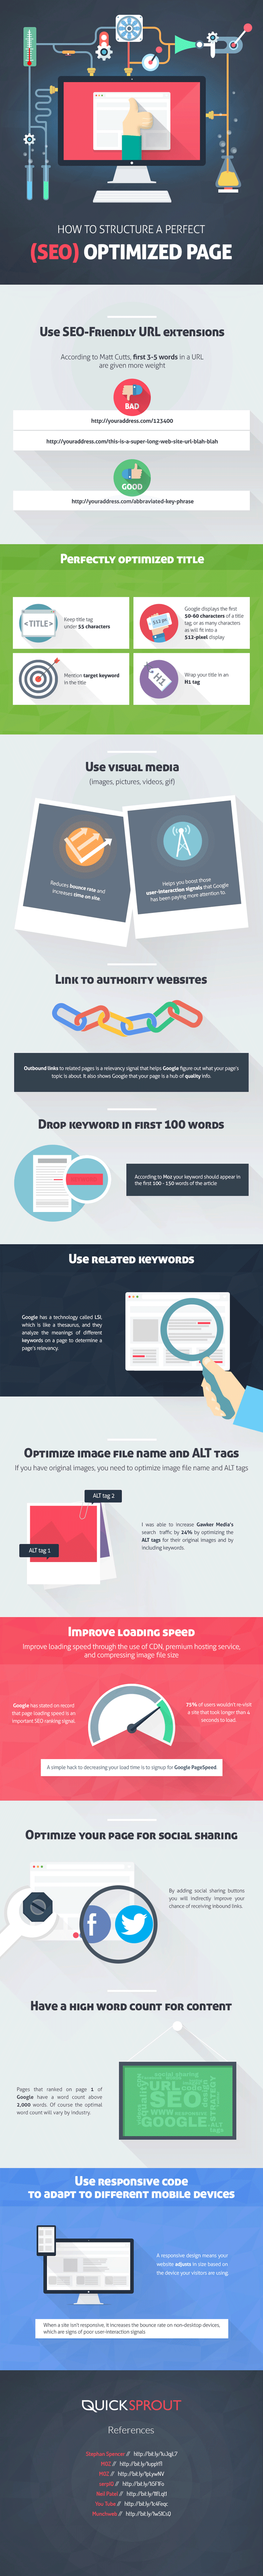 How to Create an SEO-Optimized Web Page - Infographic